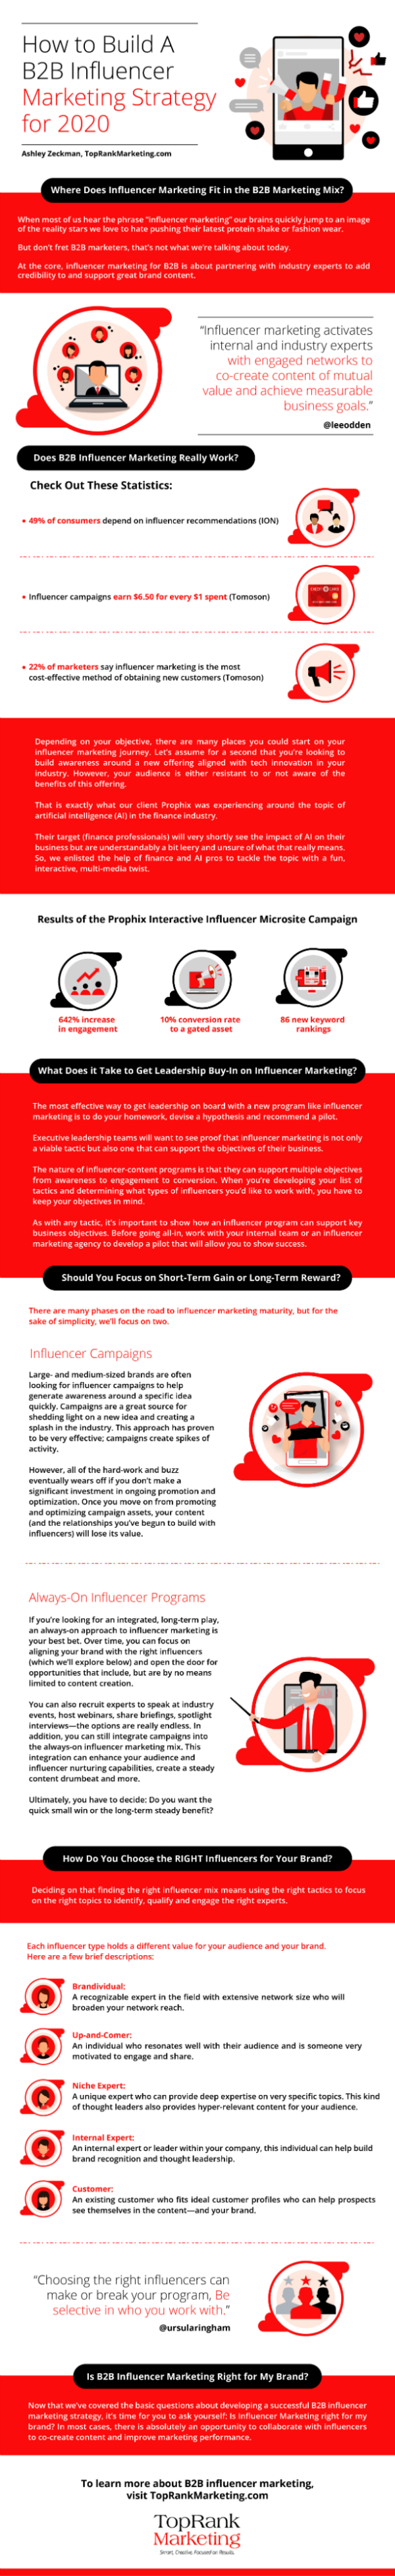 Infographic - B2B Influencer Marketing Strategy